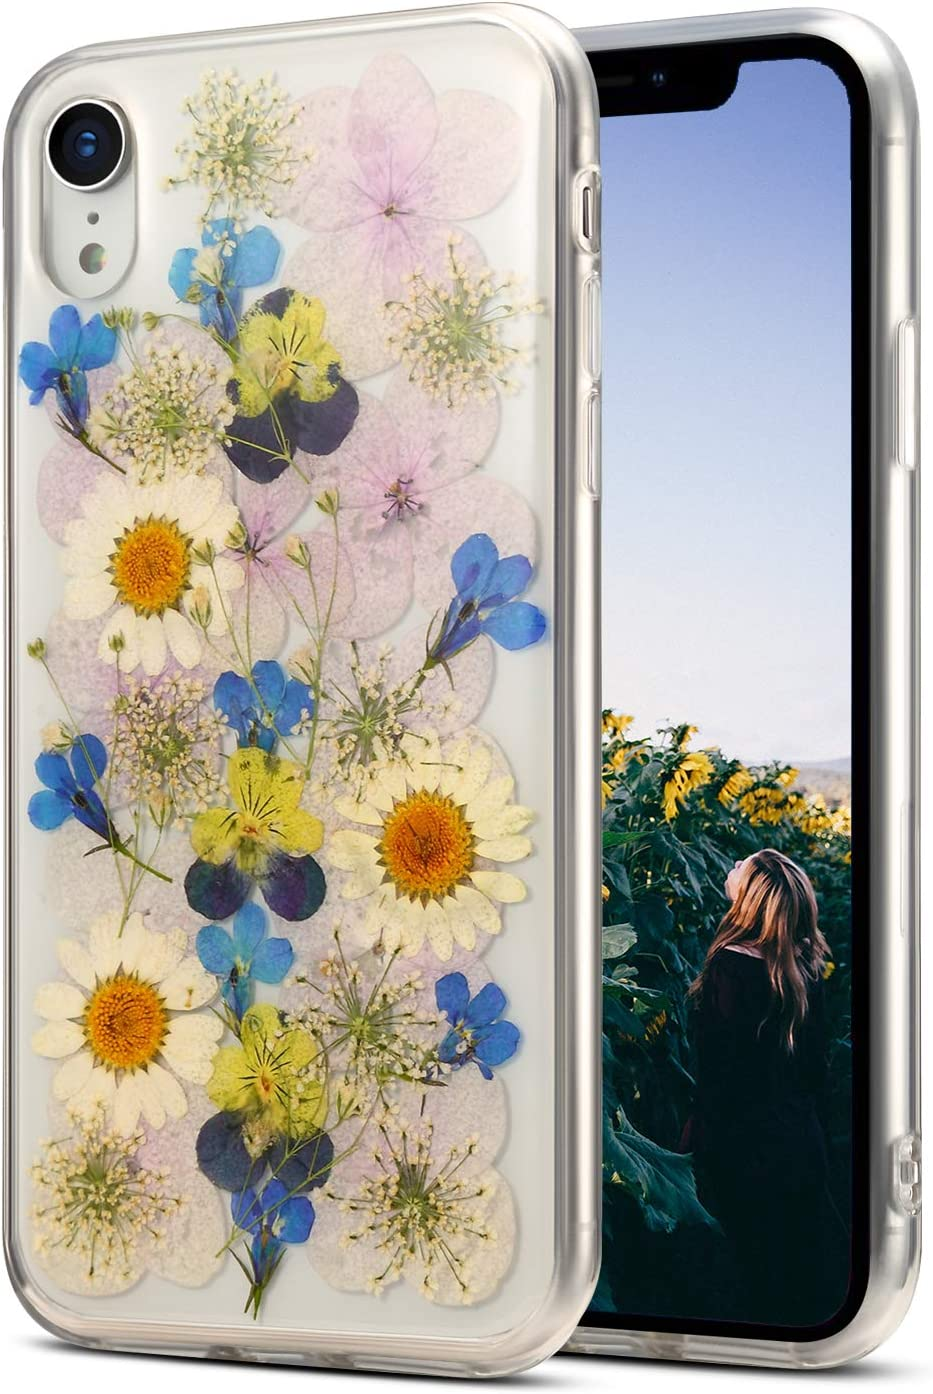 AHTONG iPhone XR Case Floral,Cute Real Flower Pressed iPhone XR Clear Case Design for Girls [Support Wireless Charging] Soft Silicone TPU Phone Protective Cover for iPhone XR 6.1'',Sunflower Blue